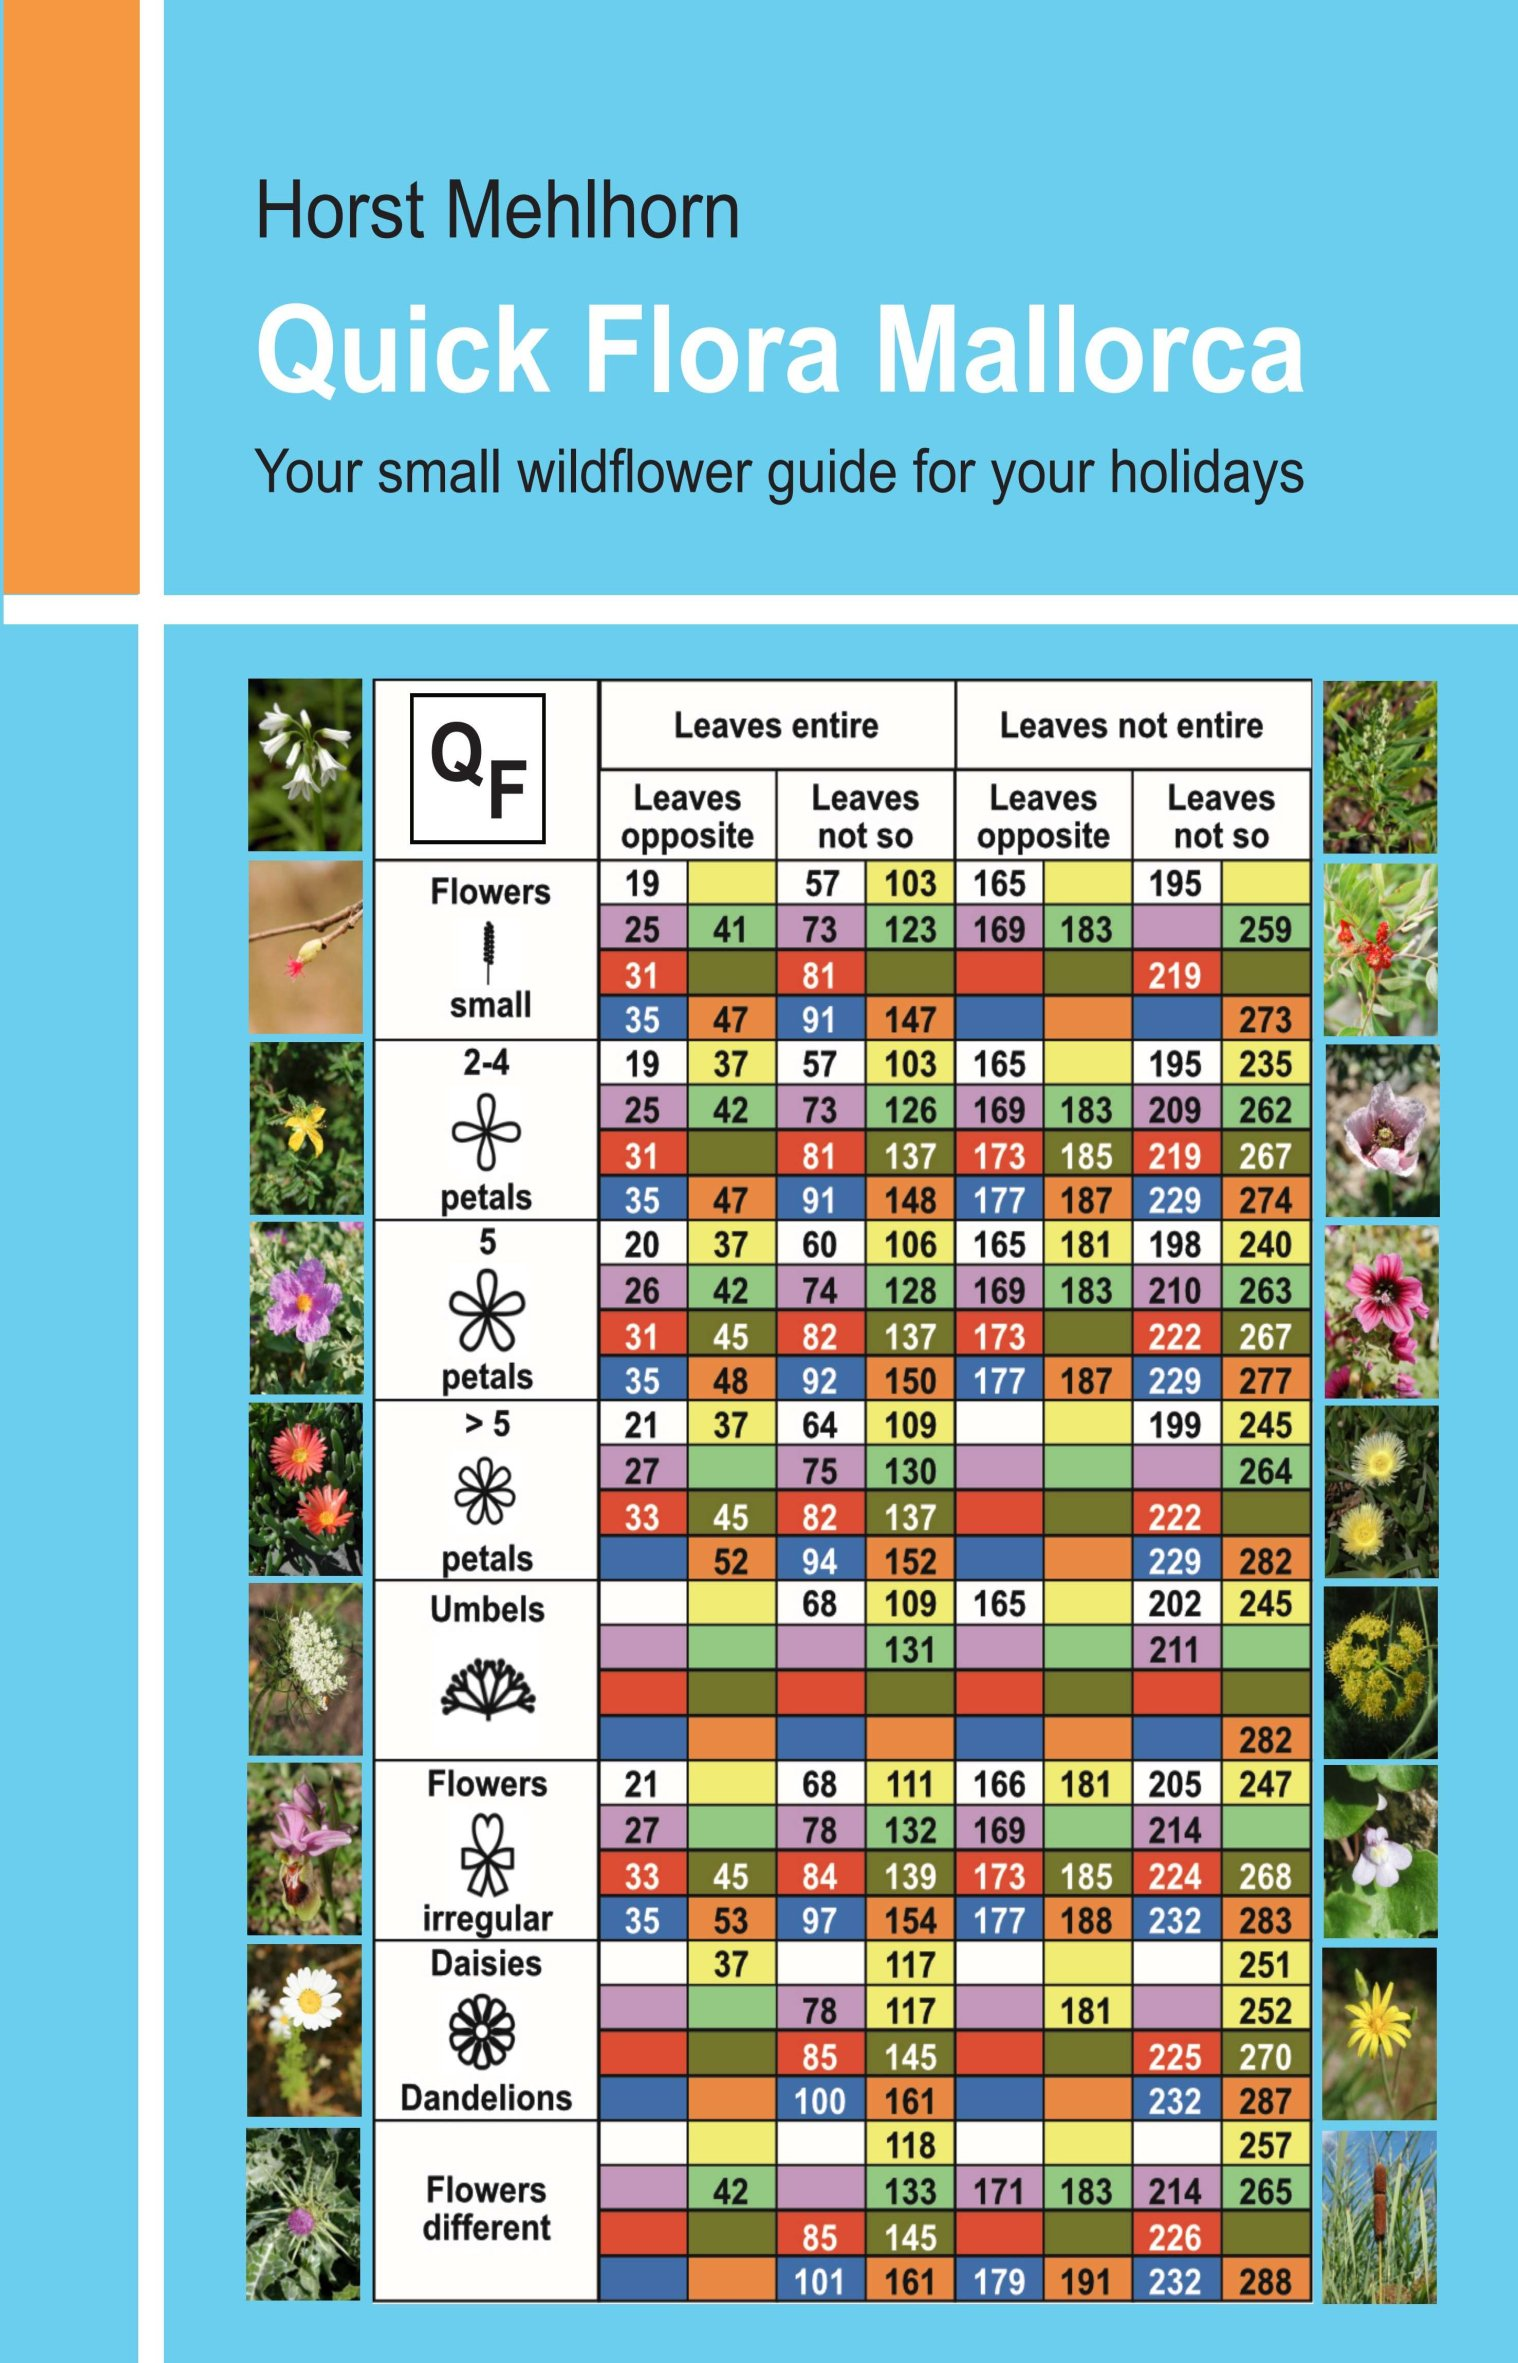 Quick Flora Mallorca - A wonderful wildflower guide for even more enjoyable holidays